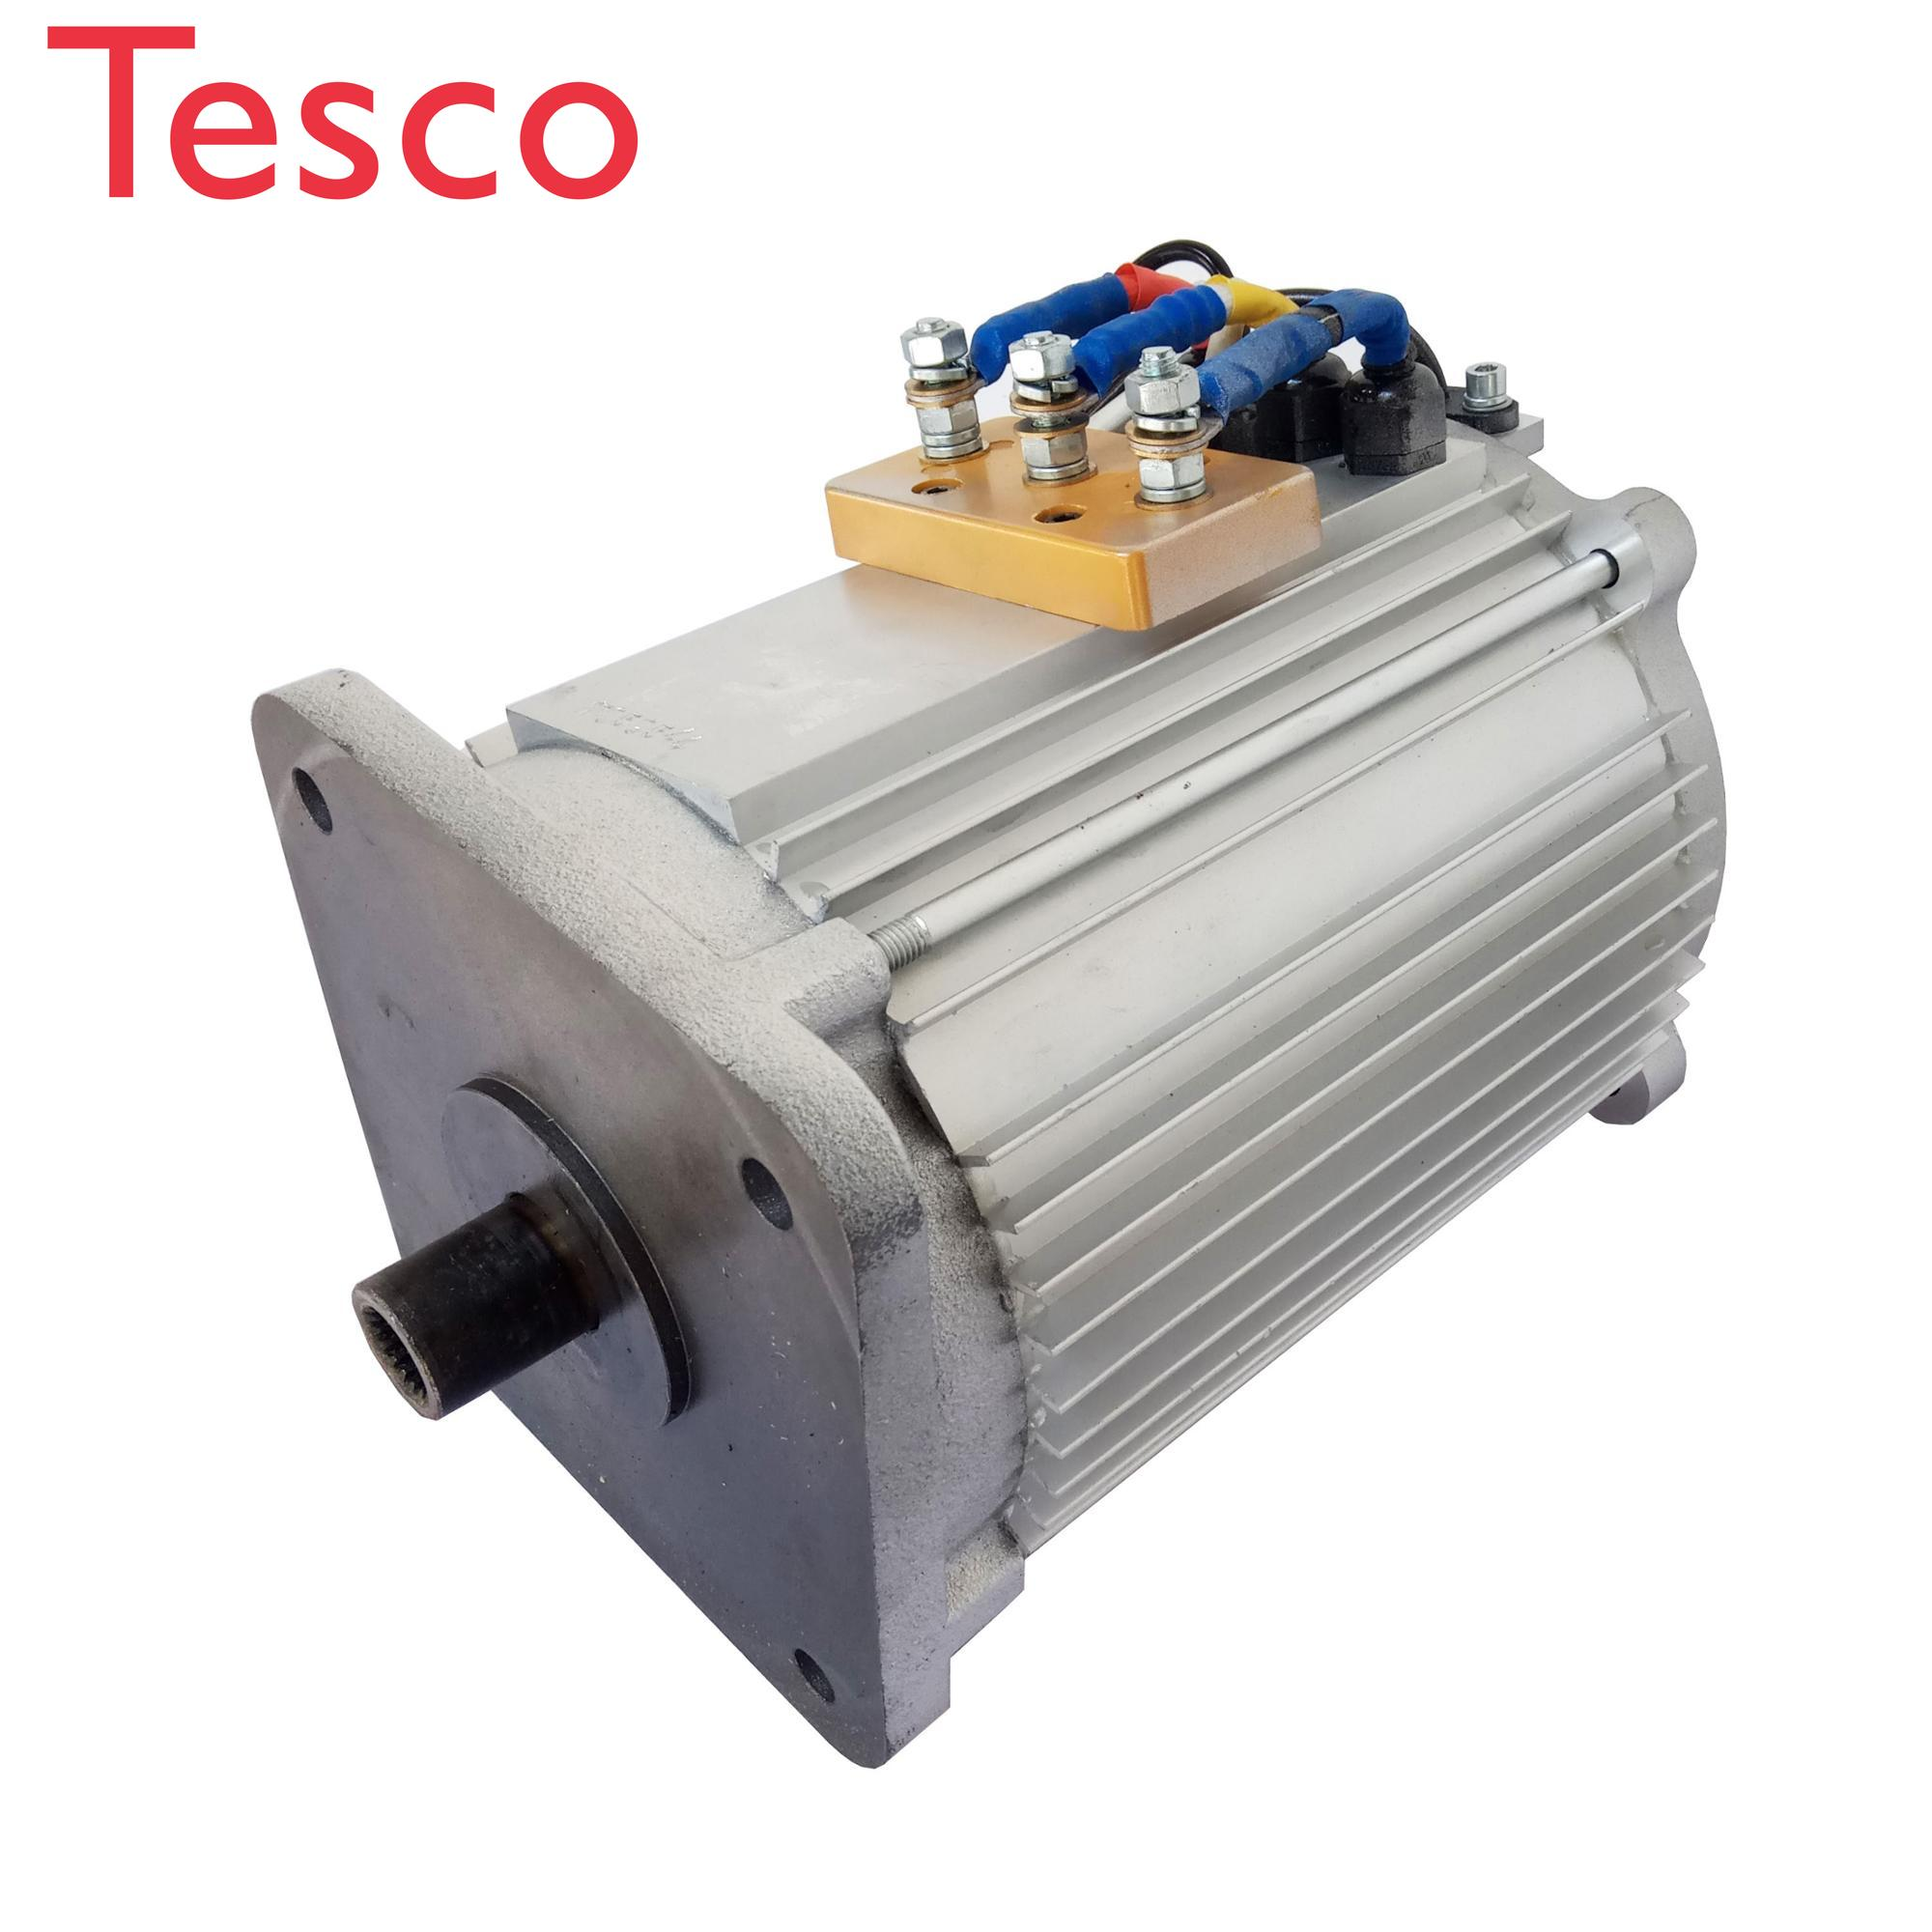 Rc Car Servo Motor 15000w Car Electric Motor Conversion Kit Electric Motors 49069